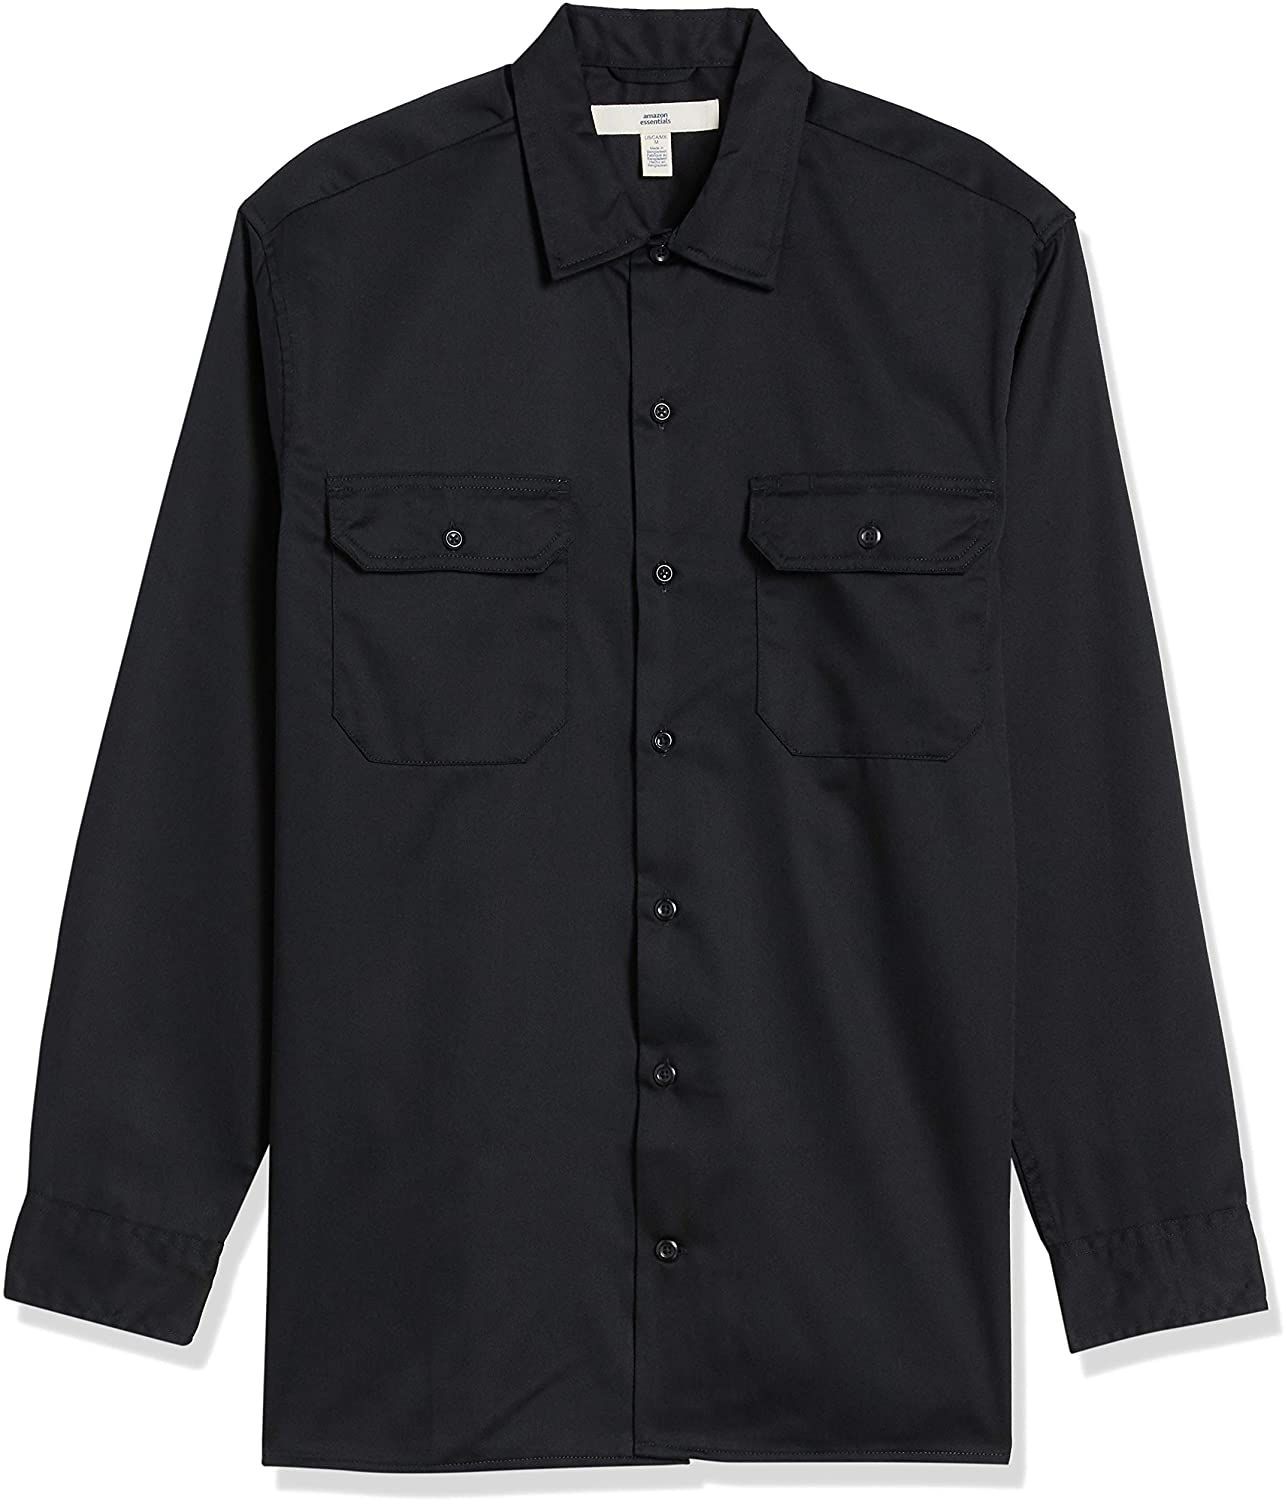 Amazon Essentials Men's Long-Sleeve Stain and Wrinkle-Resistant Work Shirt